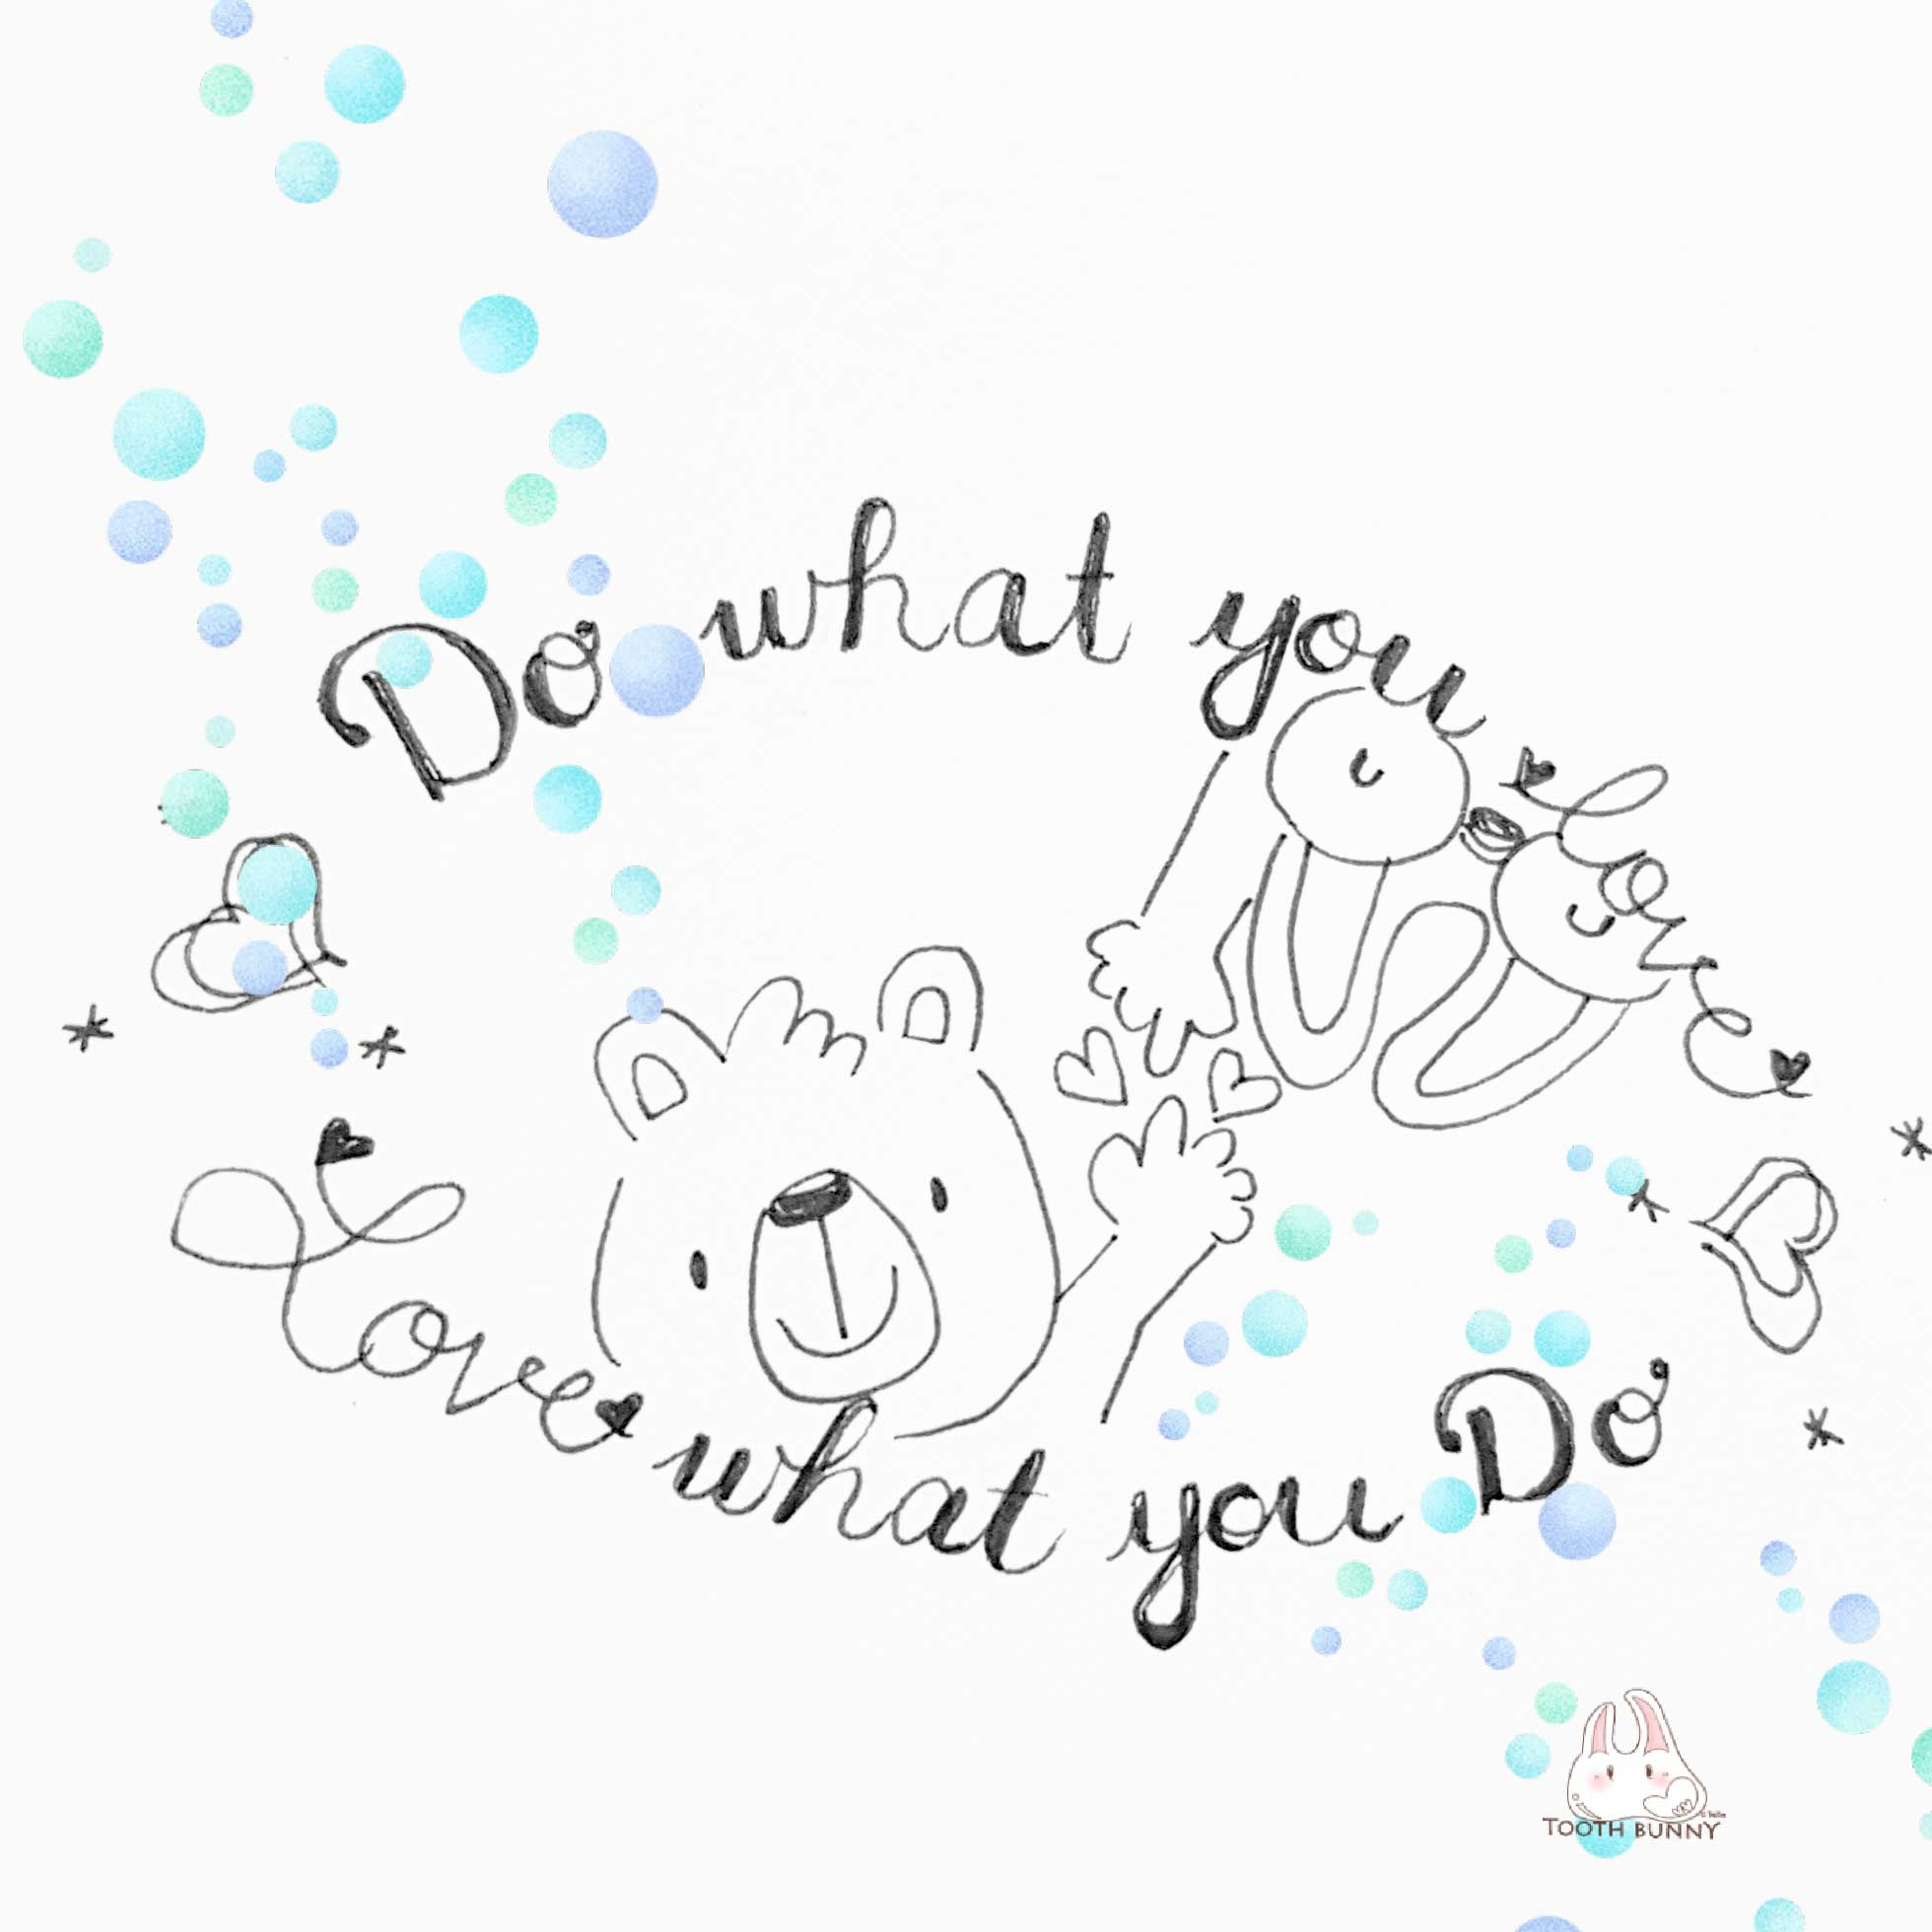 """Annetta Tsang of Tooth Bunny's aim in life is to """"do what you love, love what you do."""" You'll never feel like you are made to work another day - if you are having fun.  #toothbunny #annettatsang #drtata #lovewhatyoudo #funquotes"""